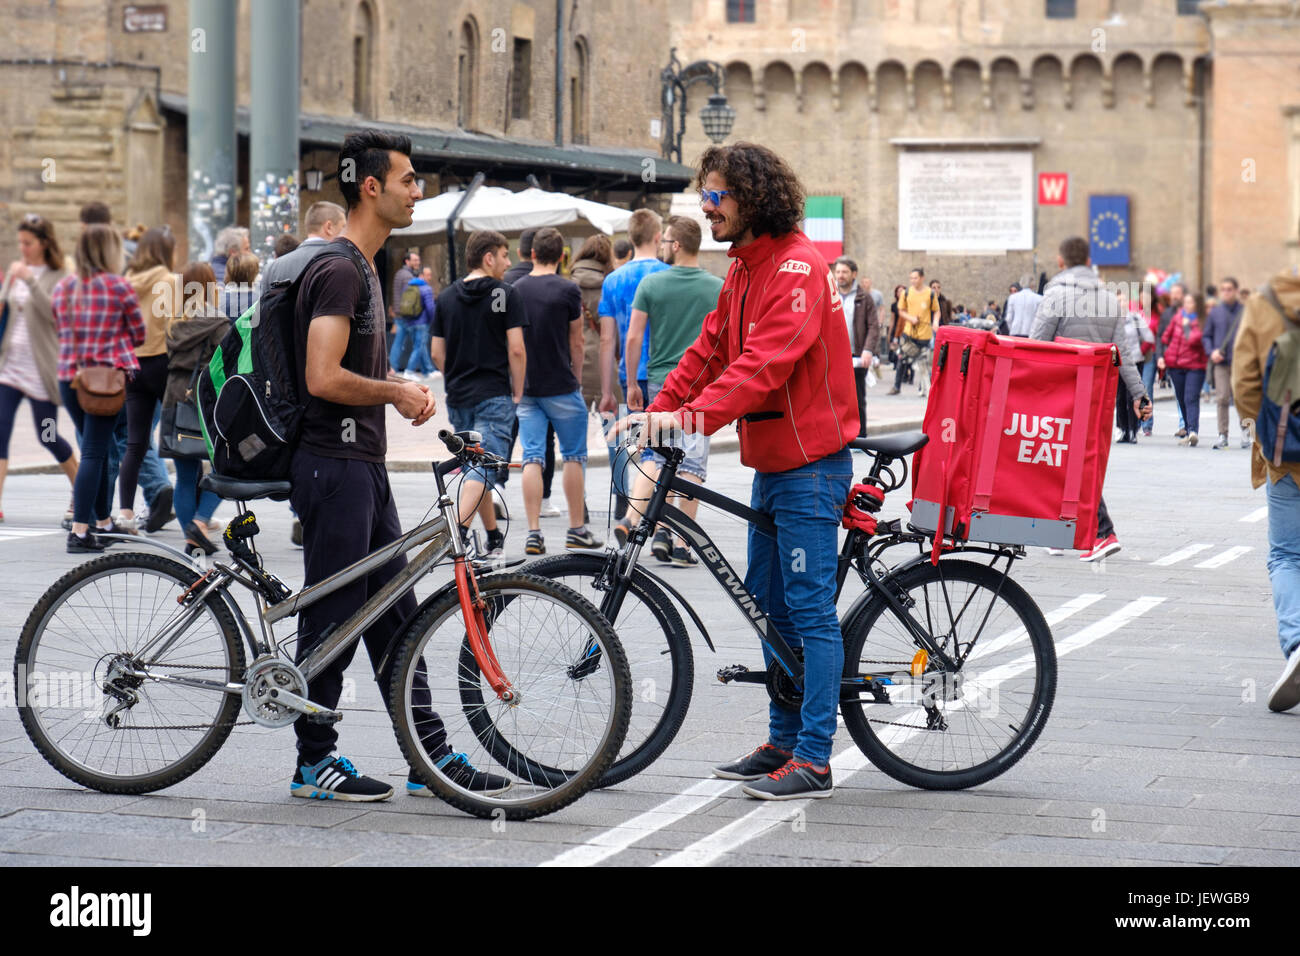 Bologna, Italy, 1 May 2017 - A Just Eat bike deliver courier speak with another cyclist in the Bologna's main - Stock Image